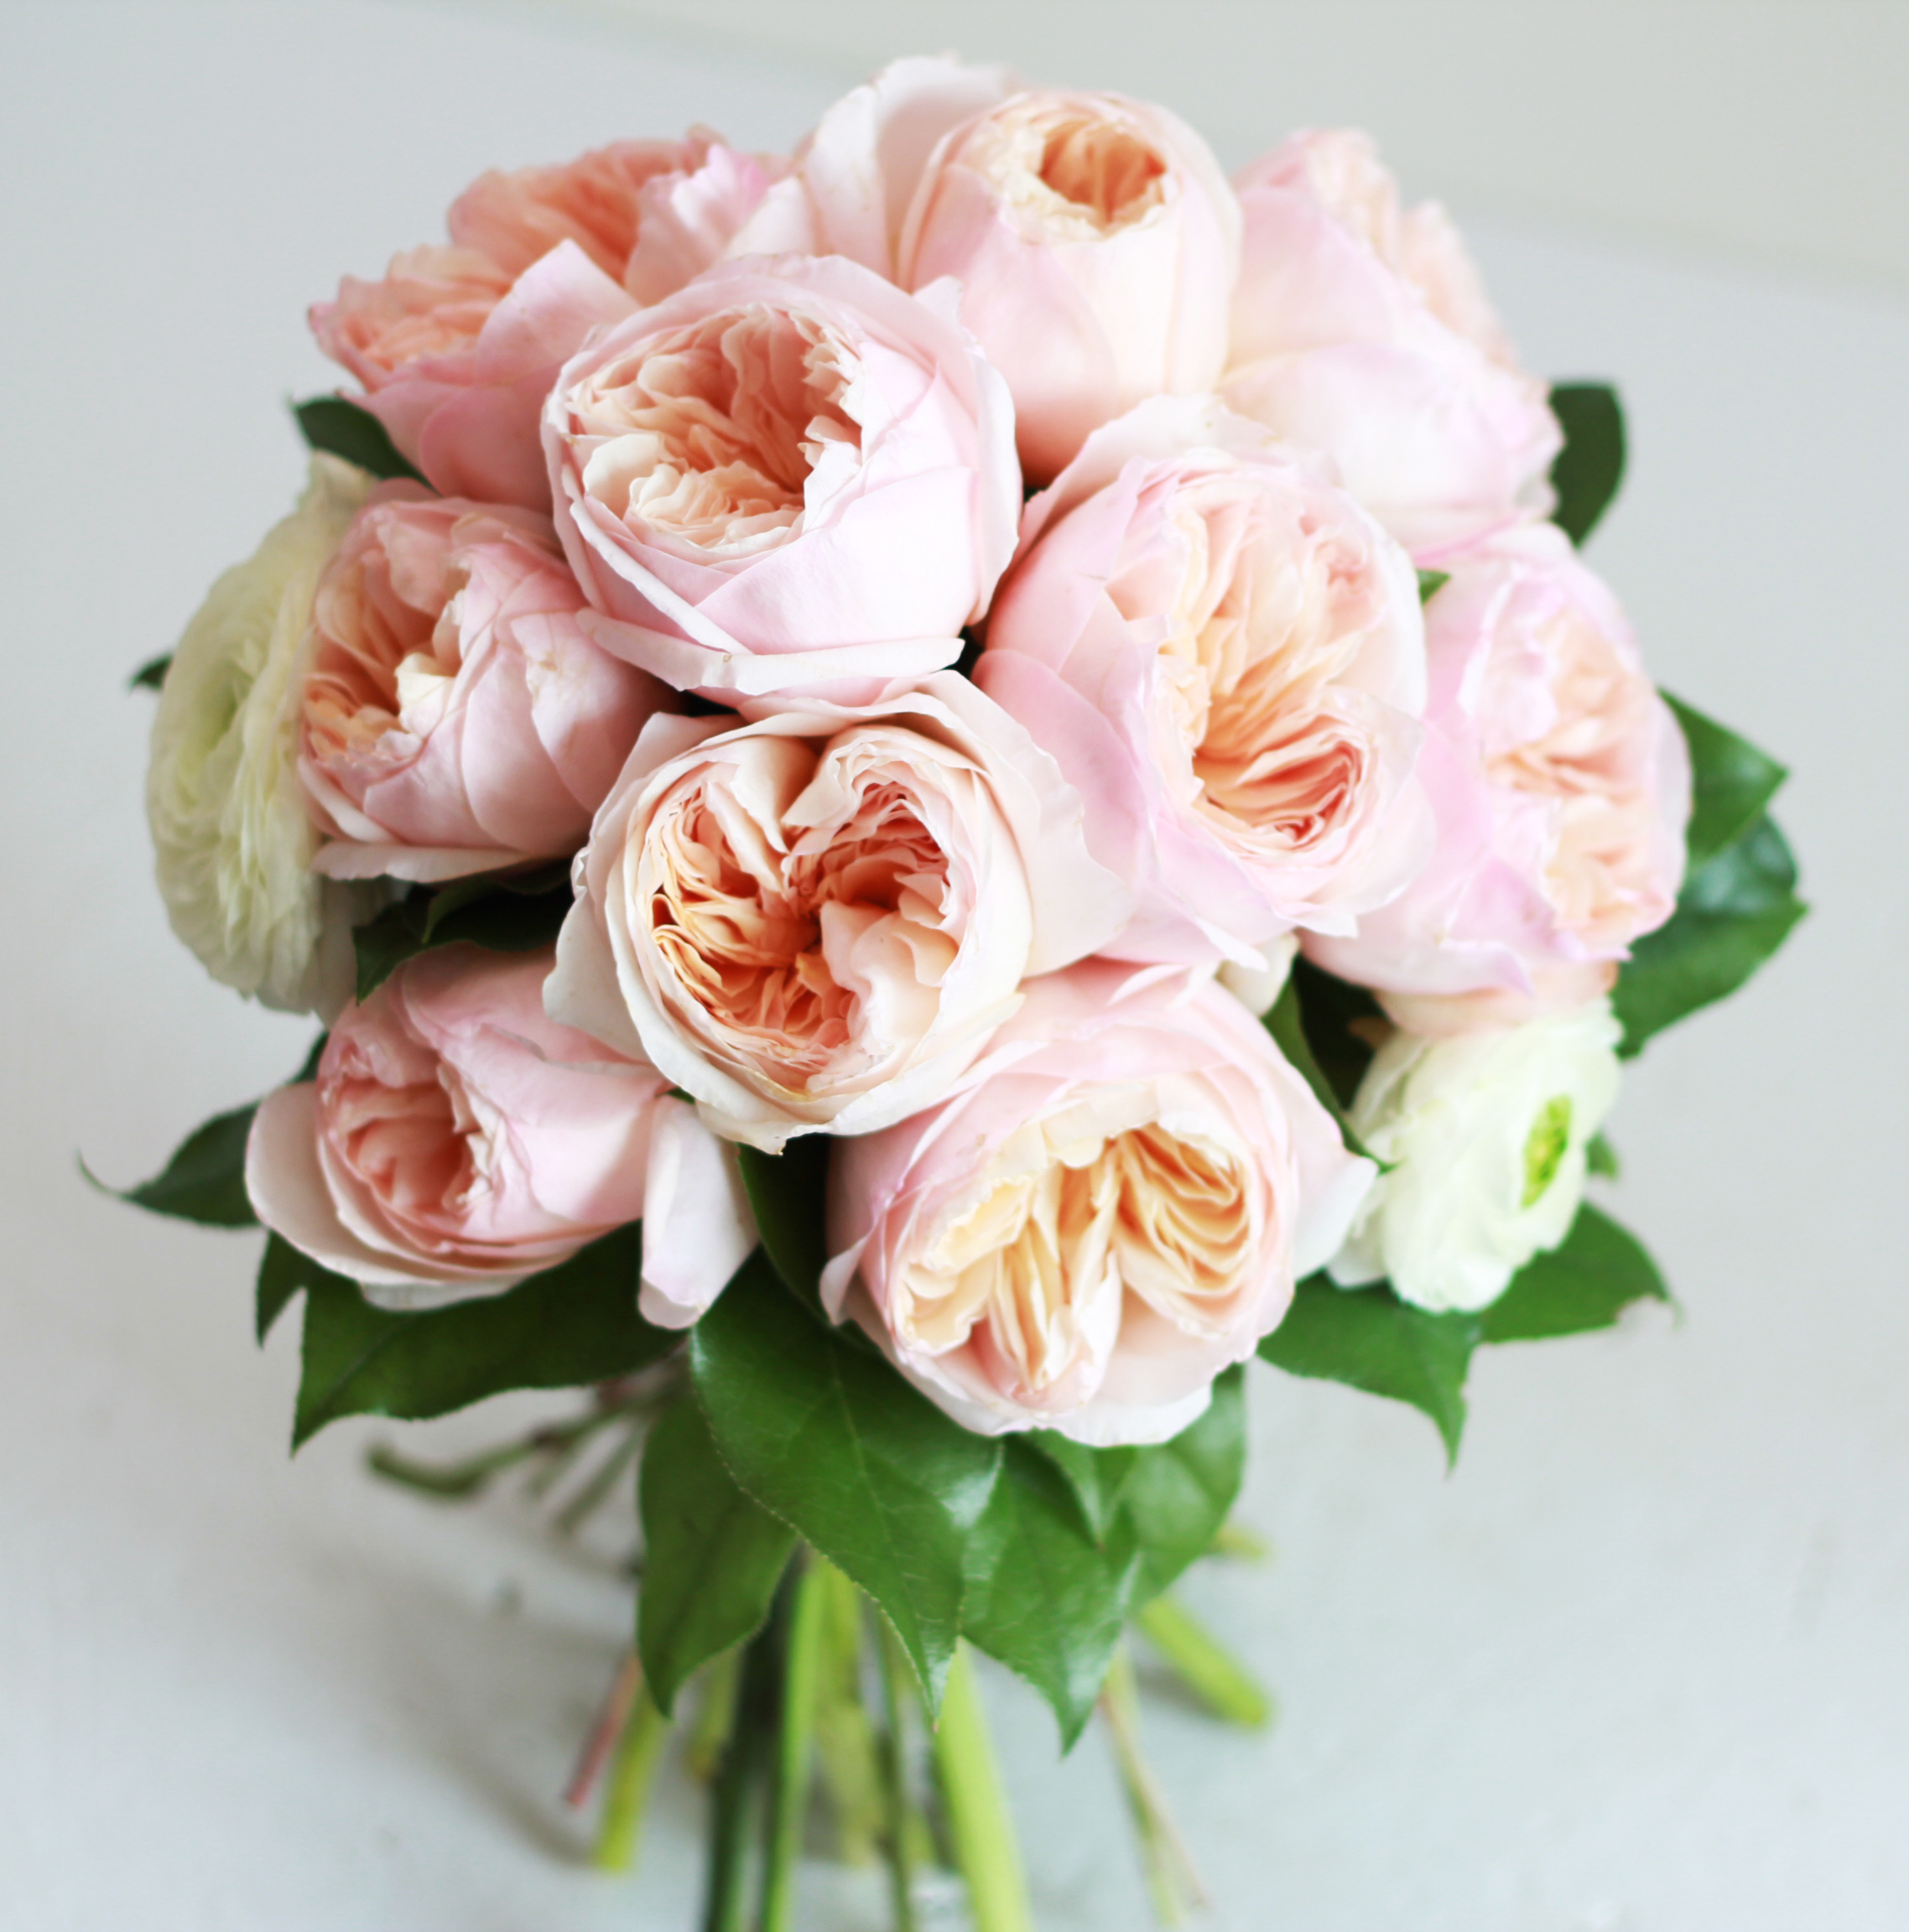 12/05/2015· a rose garden can be as simple as a single rose specimen interspersed with a few other plants, or an elaborate landscape filled with multiple rose species, hardscape and arbors. Garden Roses Wedding Bouquet